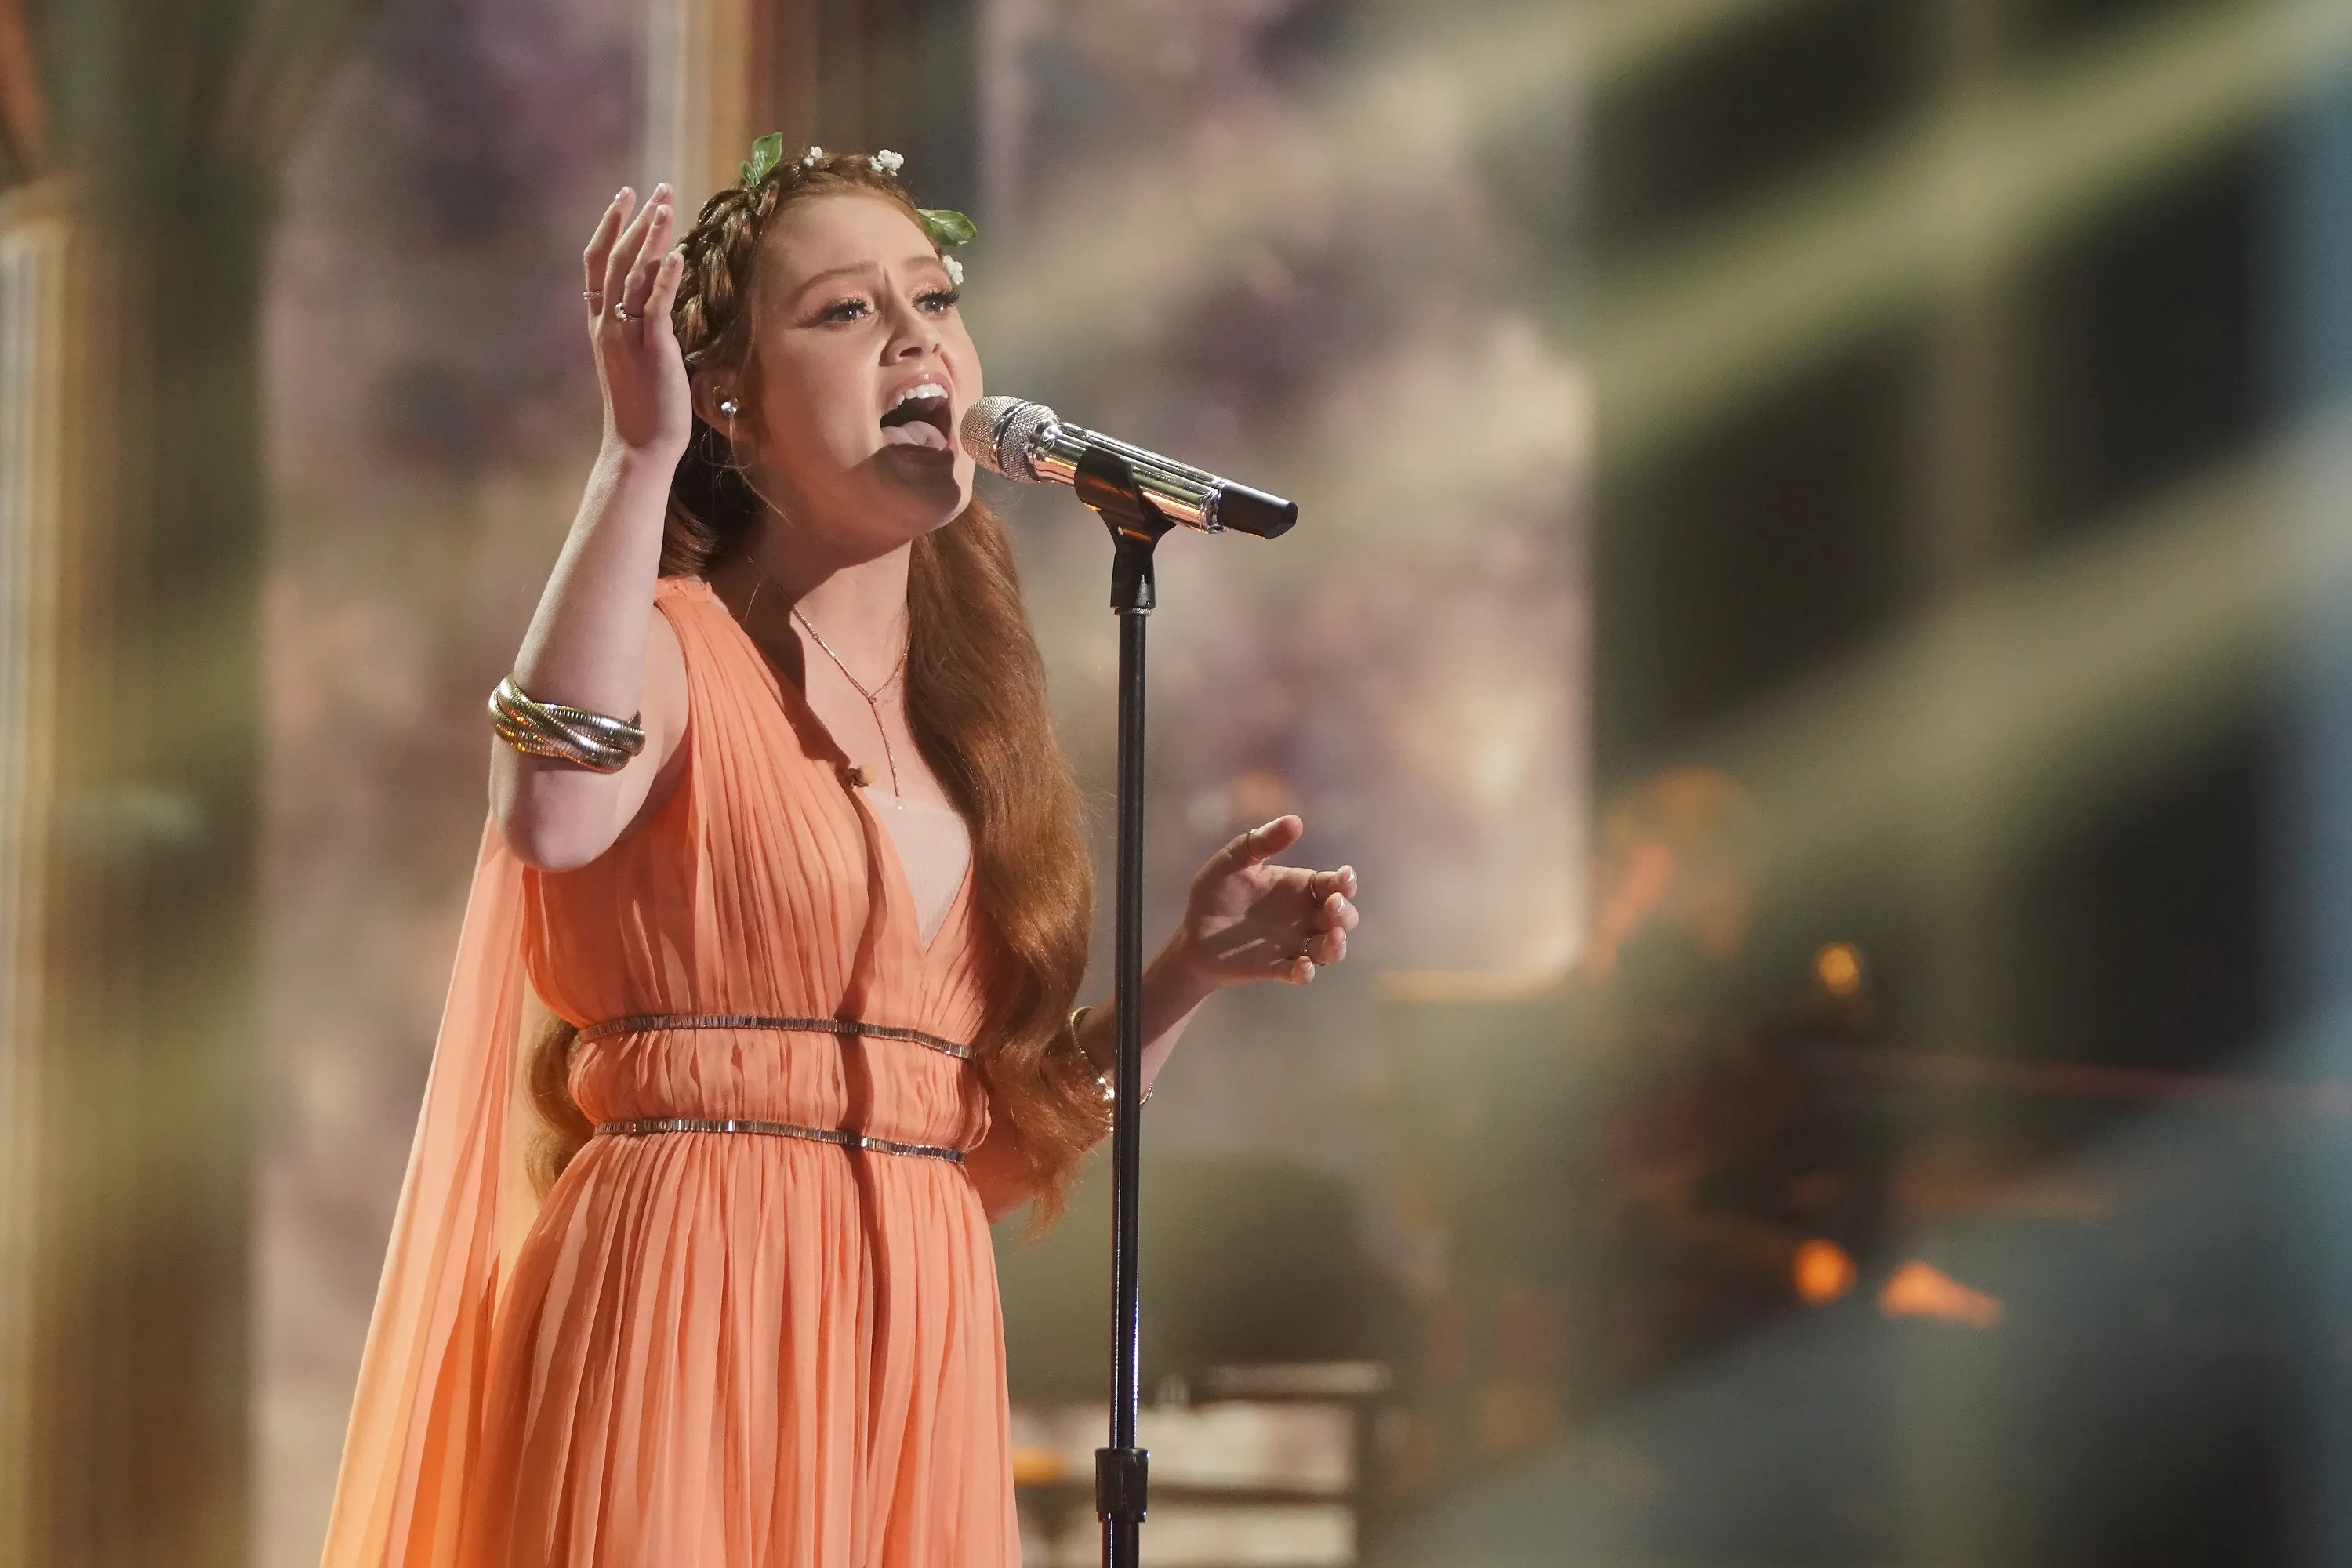 """Cassandra Coleman has been open on the show about her struggles with nerves. But the coffee shop manager channeled her inner hero, belting out """"ICan Go The Distance"""" from """"Hercules."""""""